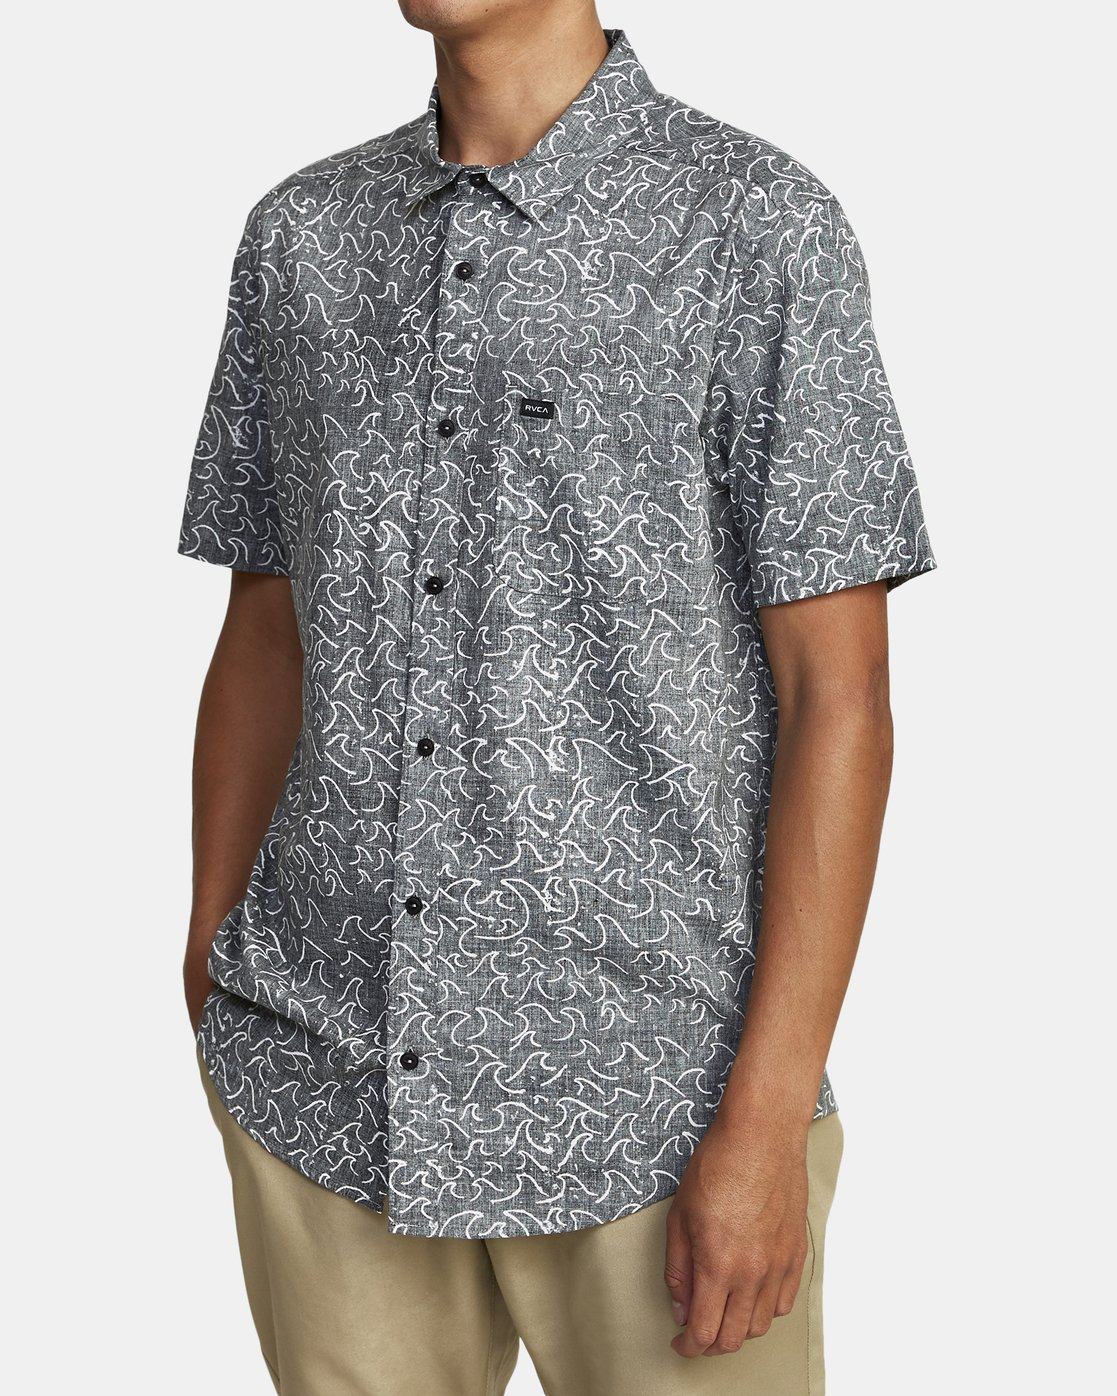 6 OBLOW WAVES SHORT SLEEVE SHIRT Black M5172ROW RVCA